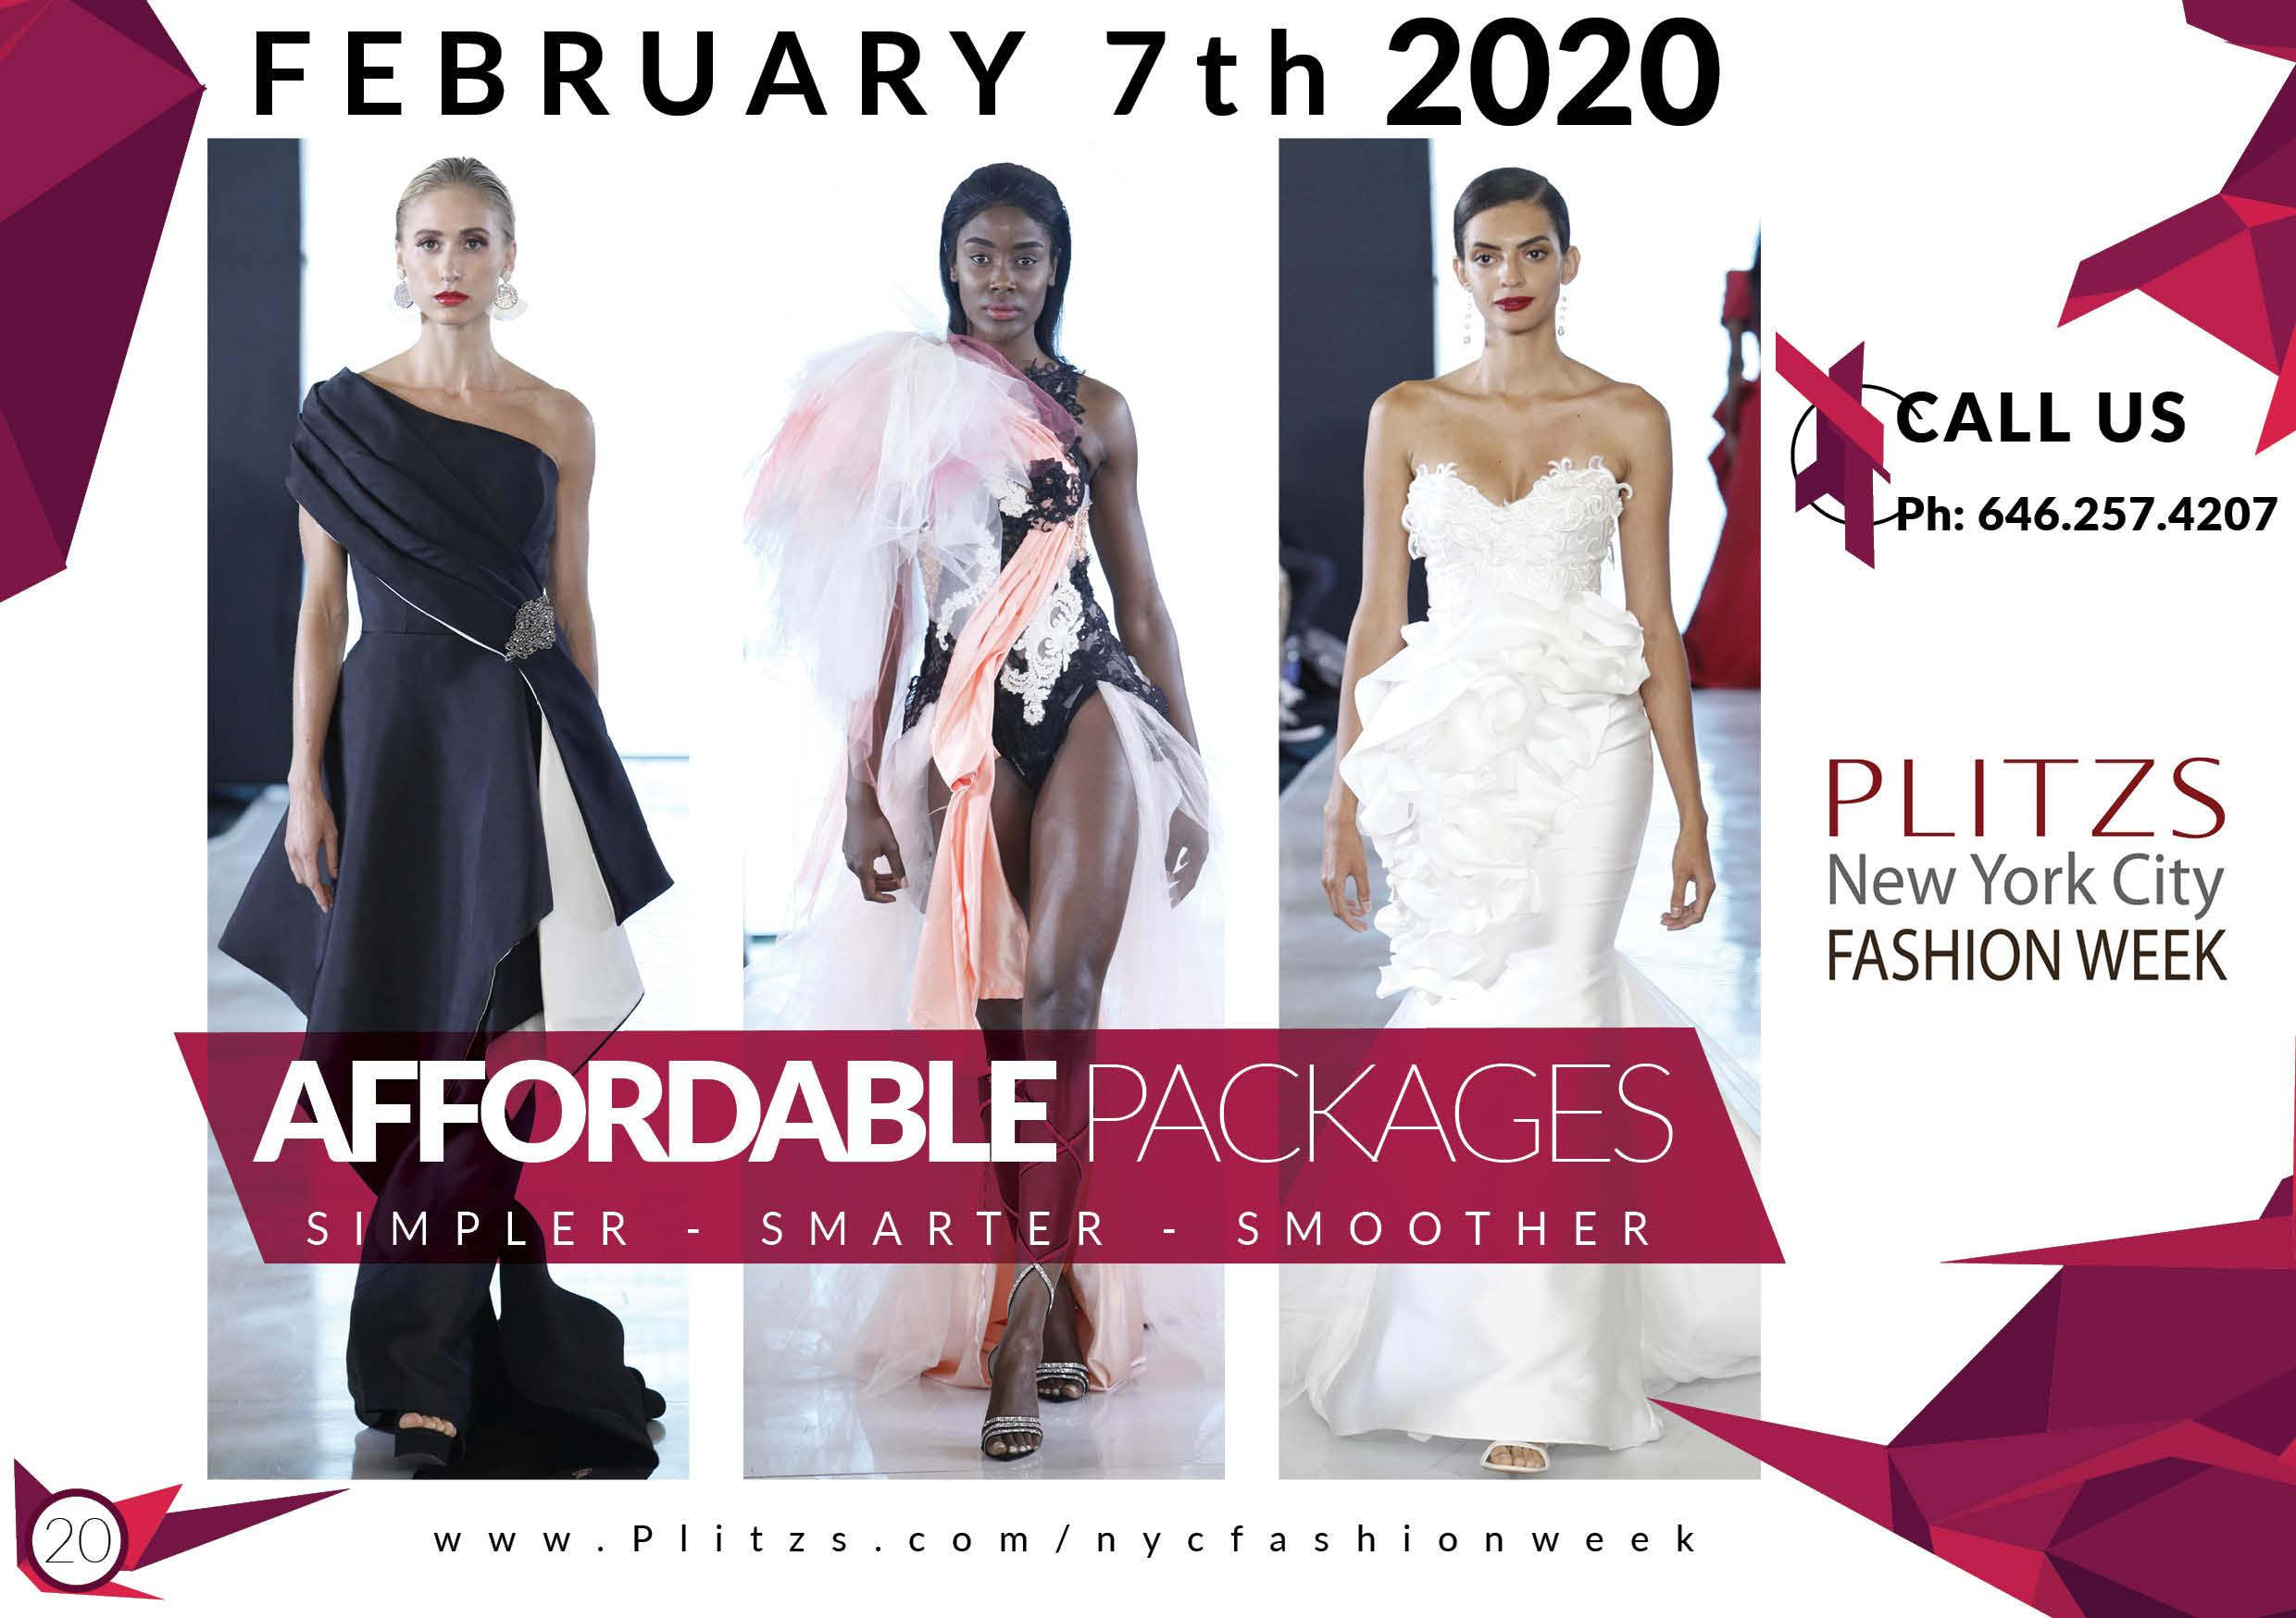 Registration Sign Up Fashion Designers Fashion Brands Plitzs New York City Fashion Week Show February September 7 Feb 2020